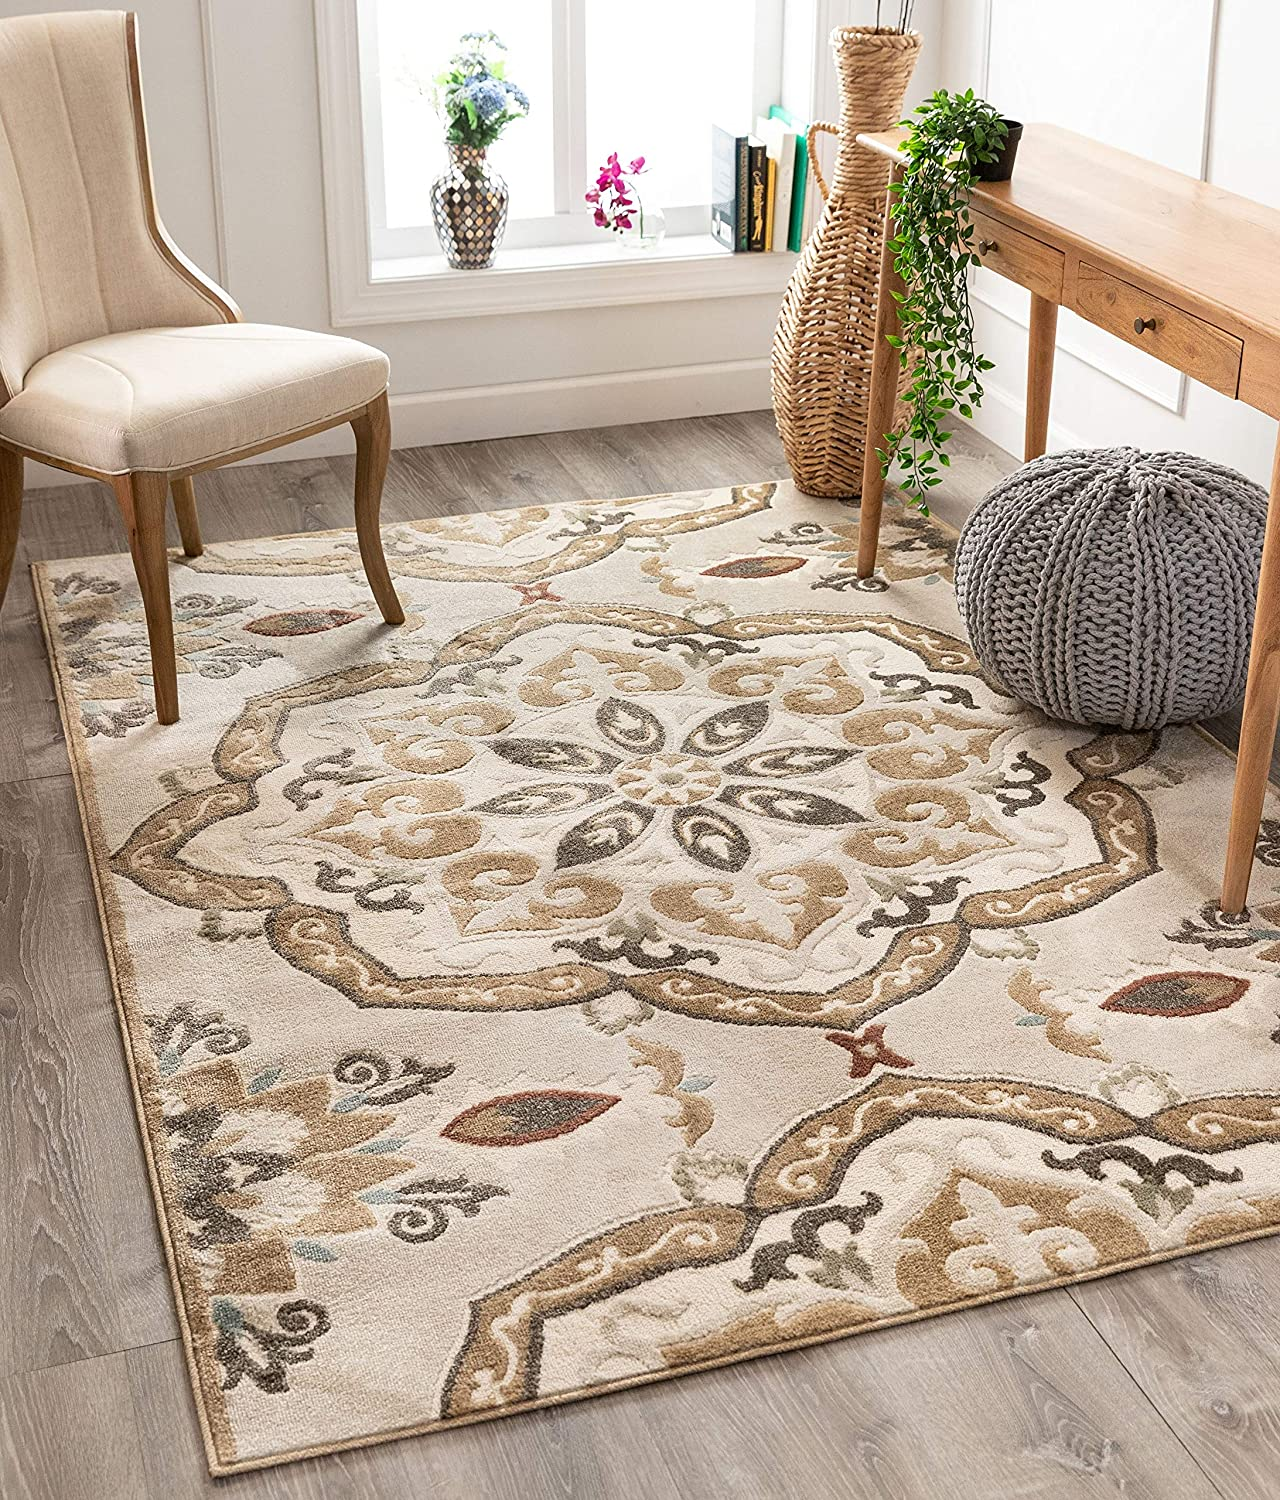 Amazon Com Well Woven Dolly Cream Beige Traditional Floral Medallion Pattern Area Rug 8x10 7 10 X 9 10 Home Kitchen